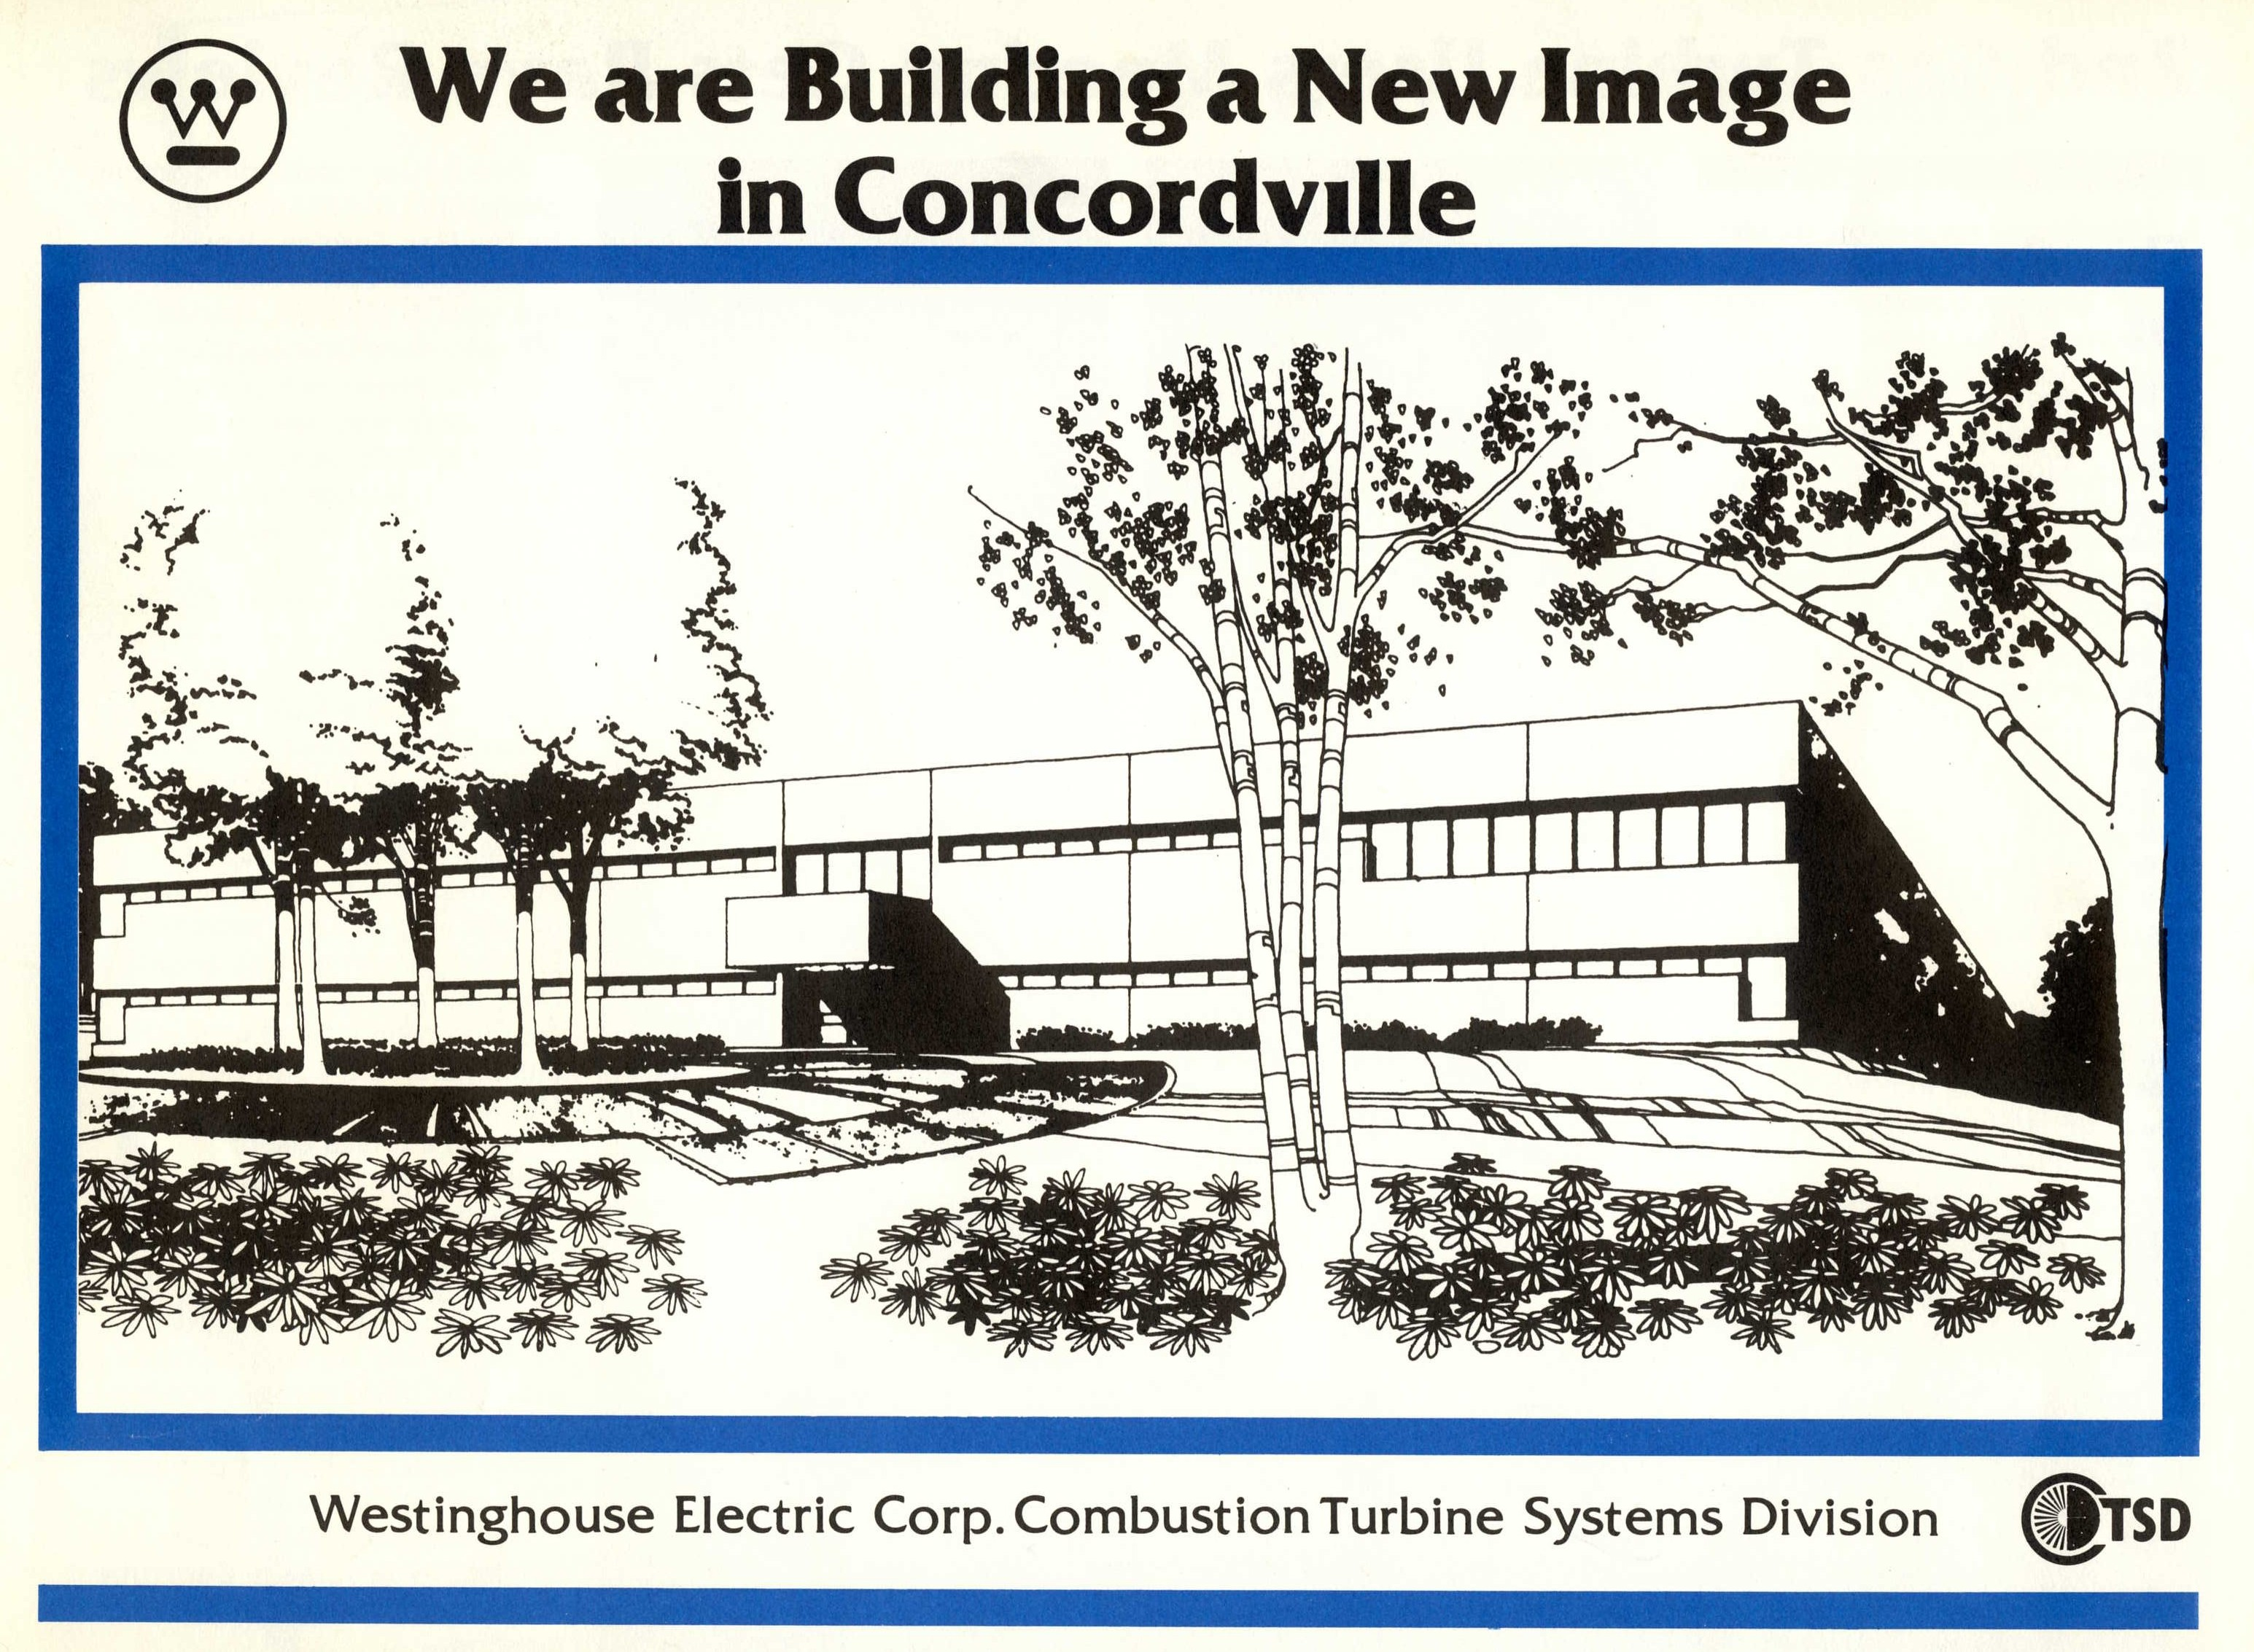 Westinghouse bustion Turbine Systems Division